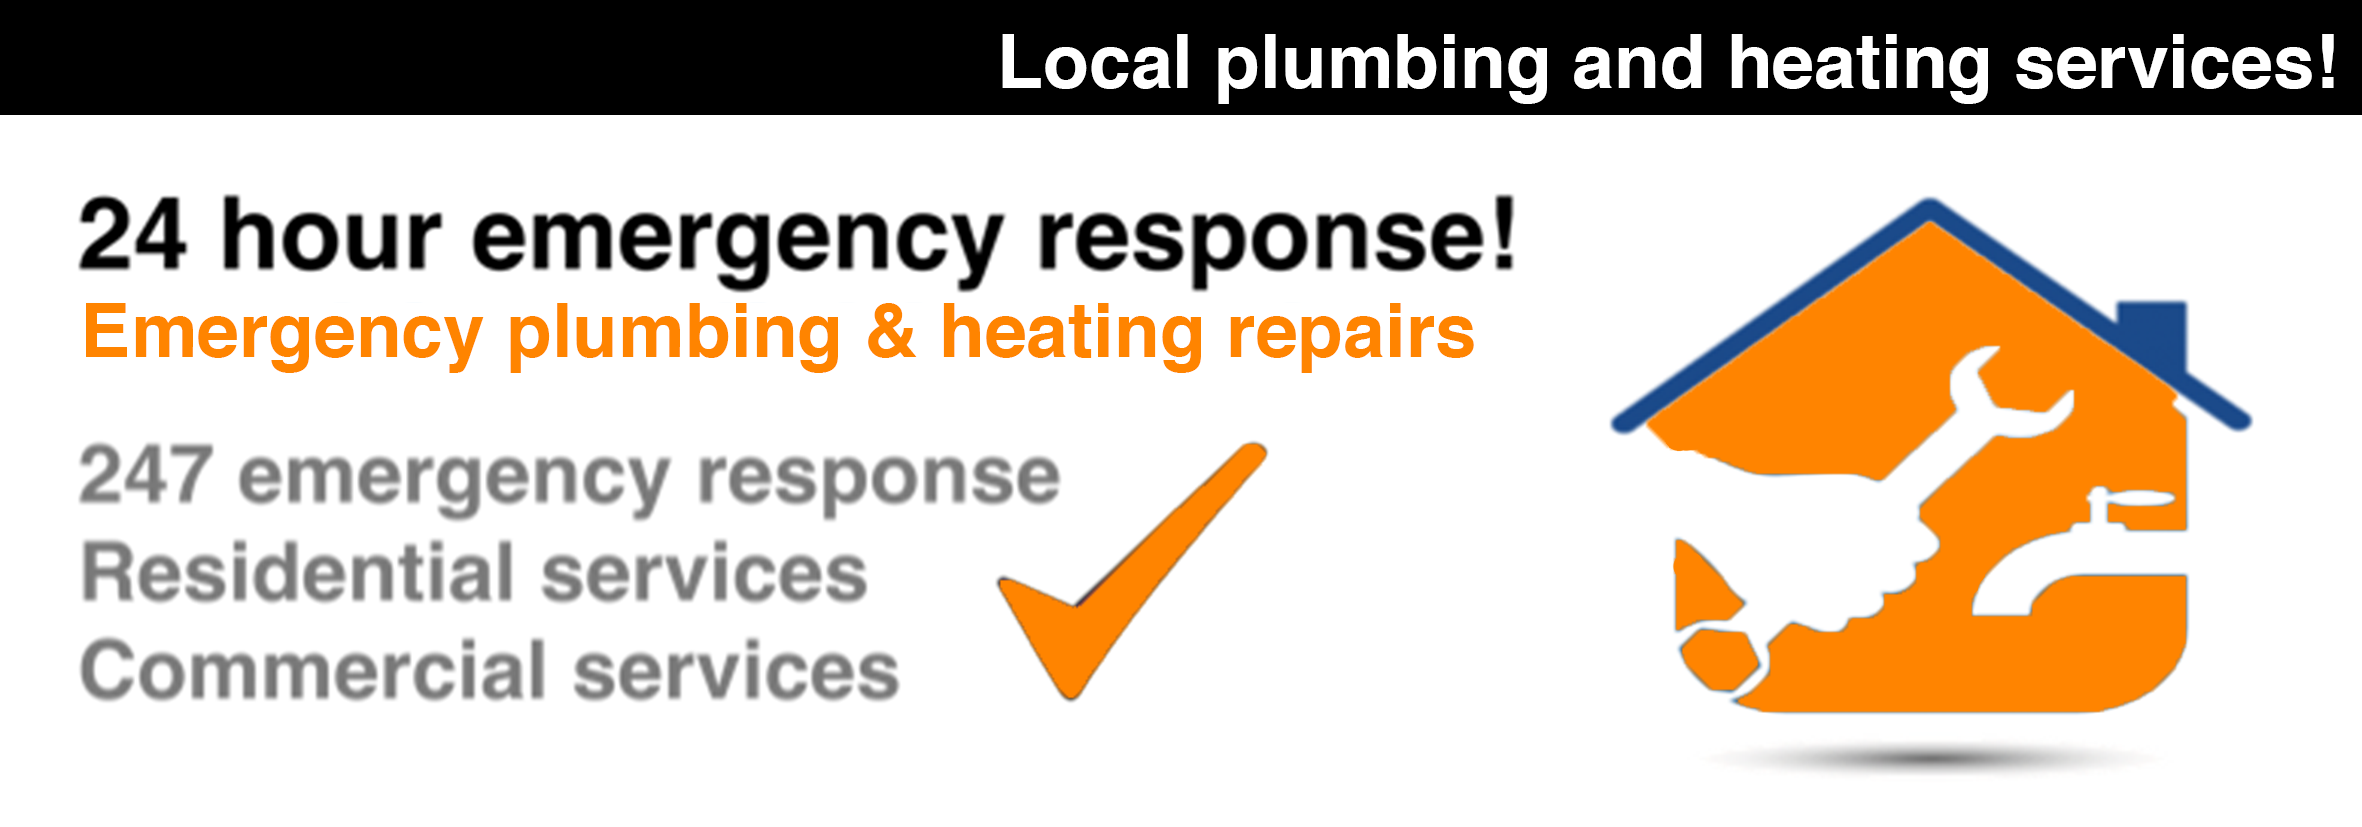 Plumbing & Heating Services in Manchester